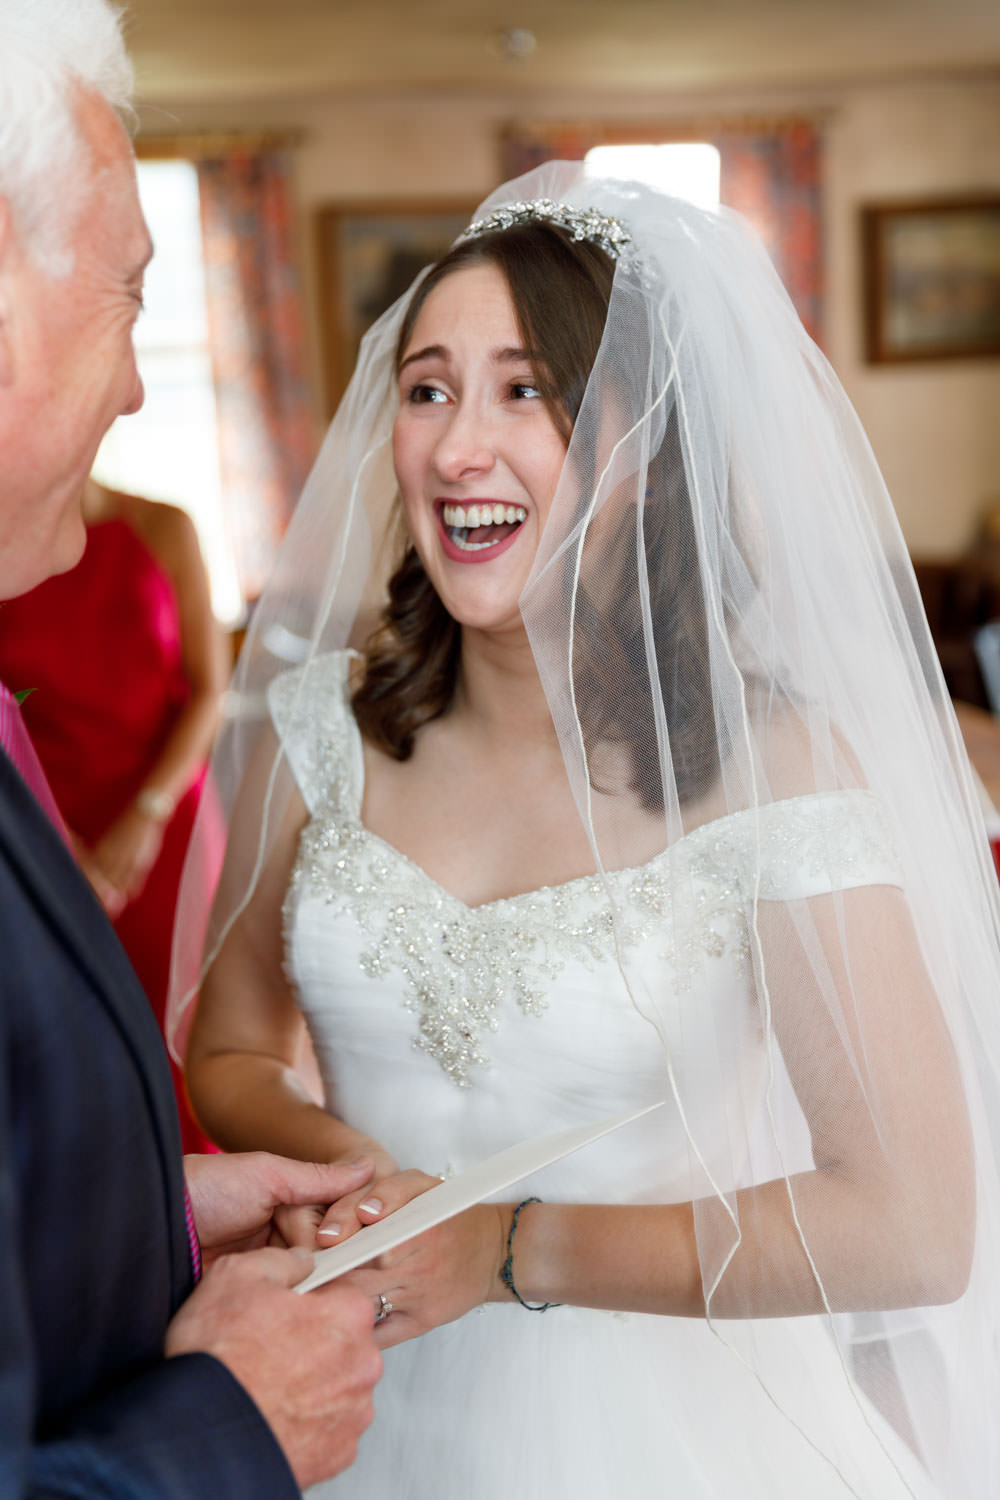 Bride and Father laughing together before wedding ceremony